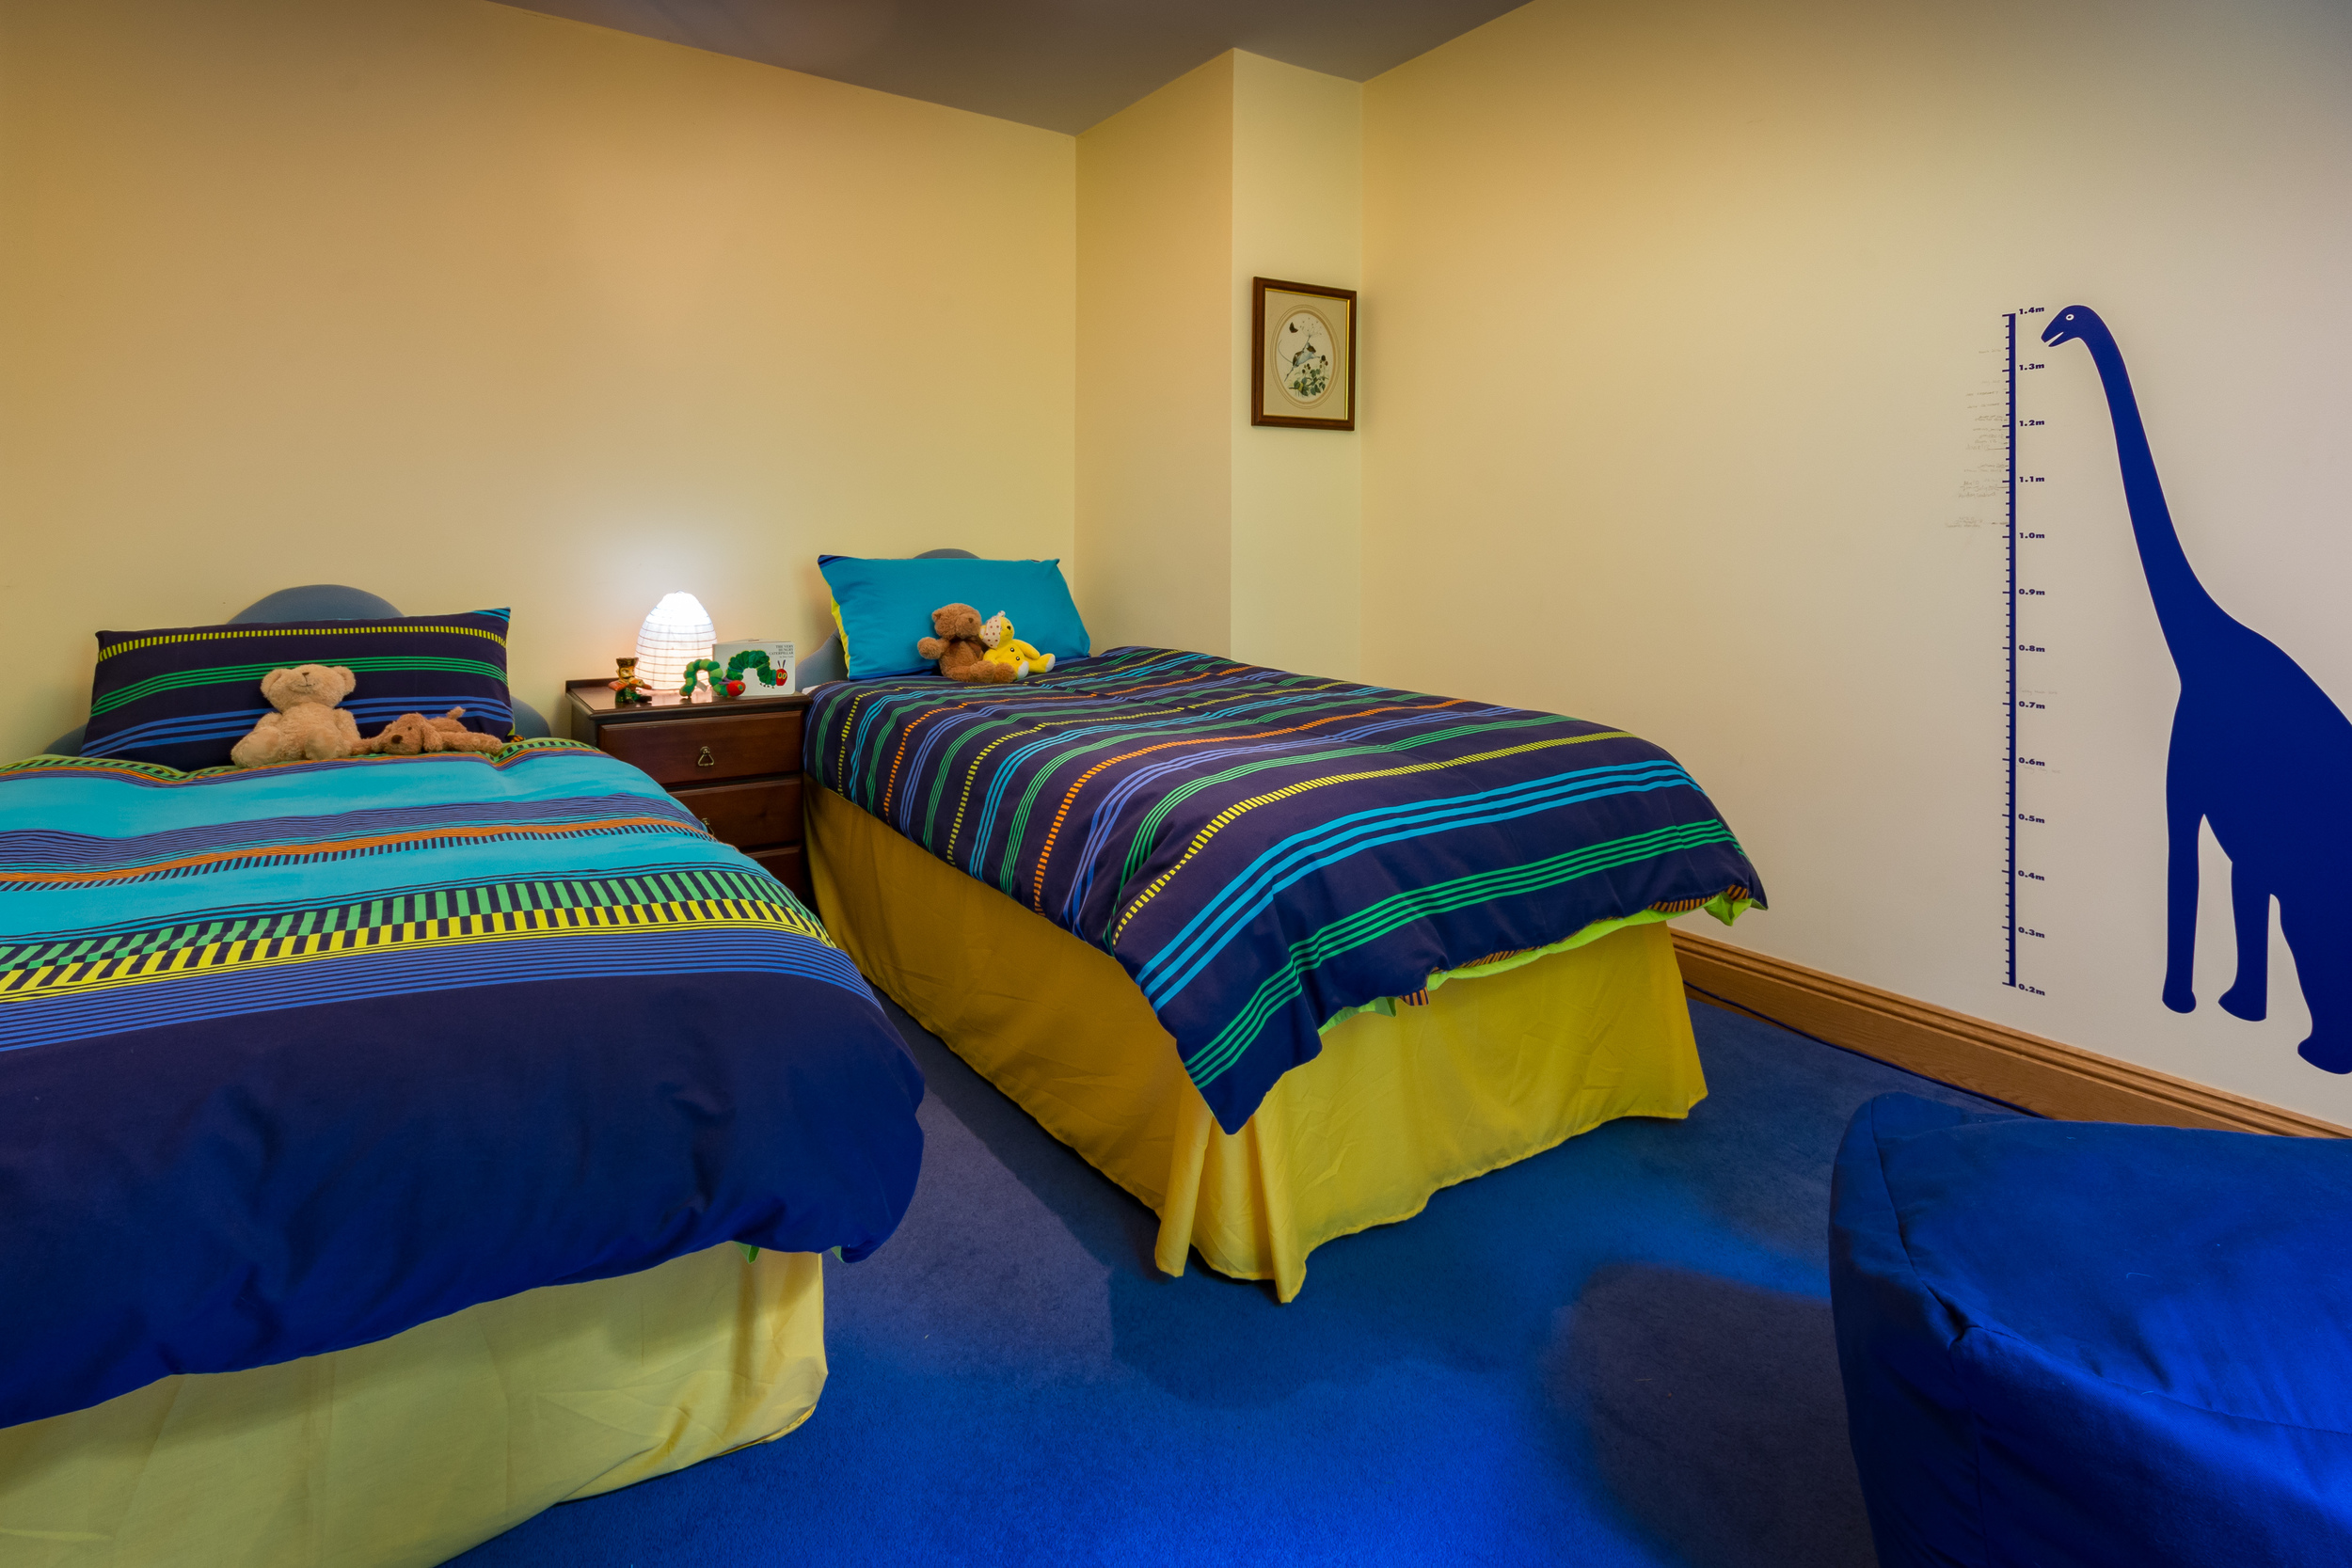 Twin Bedroom 2 - Beech Nook Thornthwaite, Keswick Holidays Self Catering.jpg